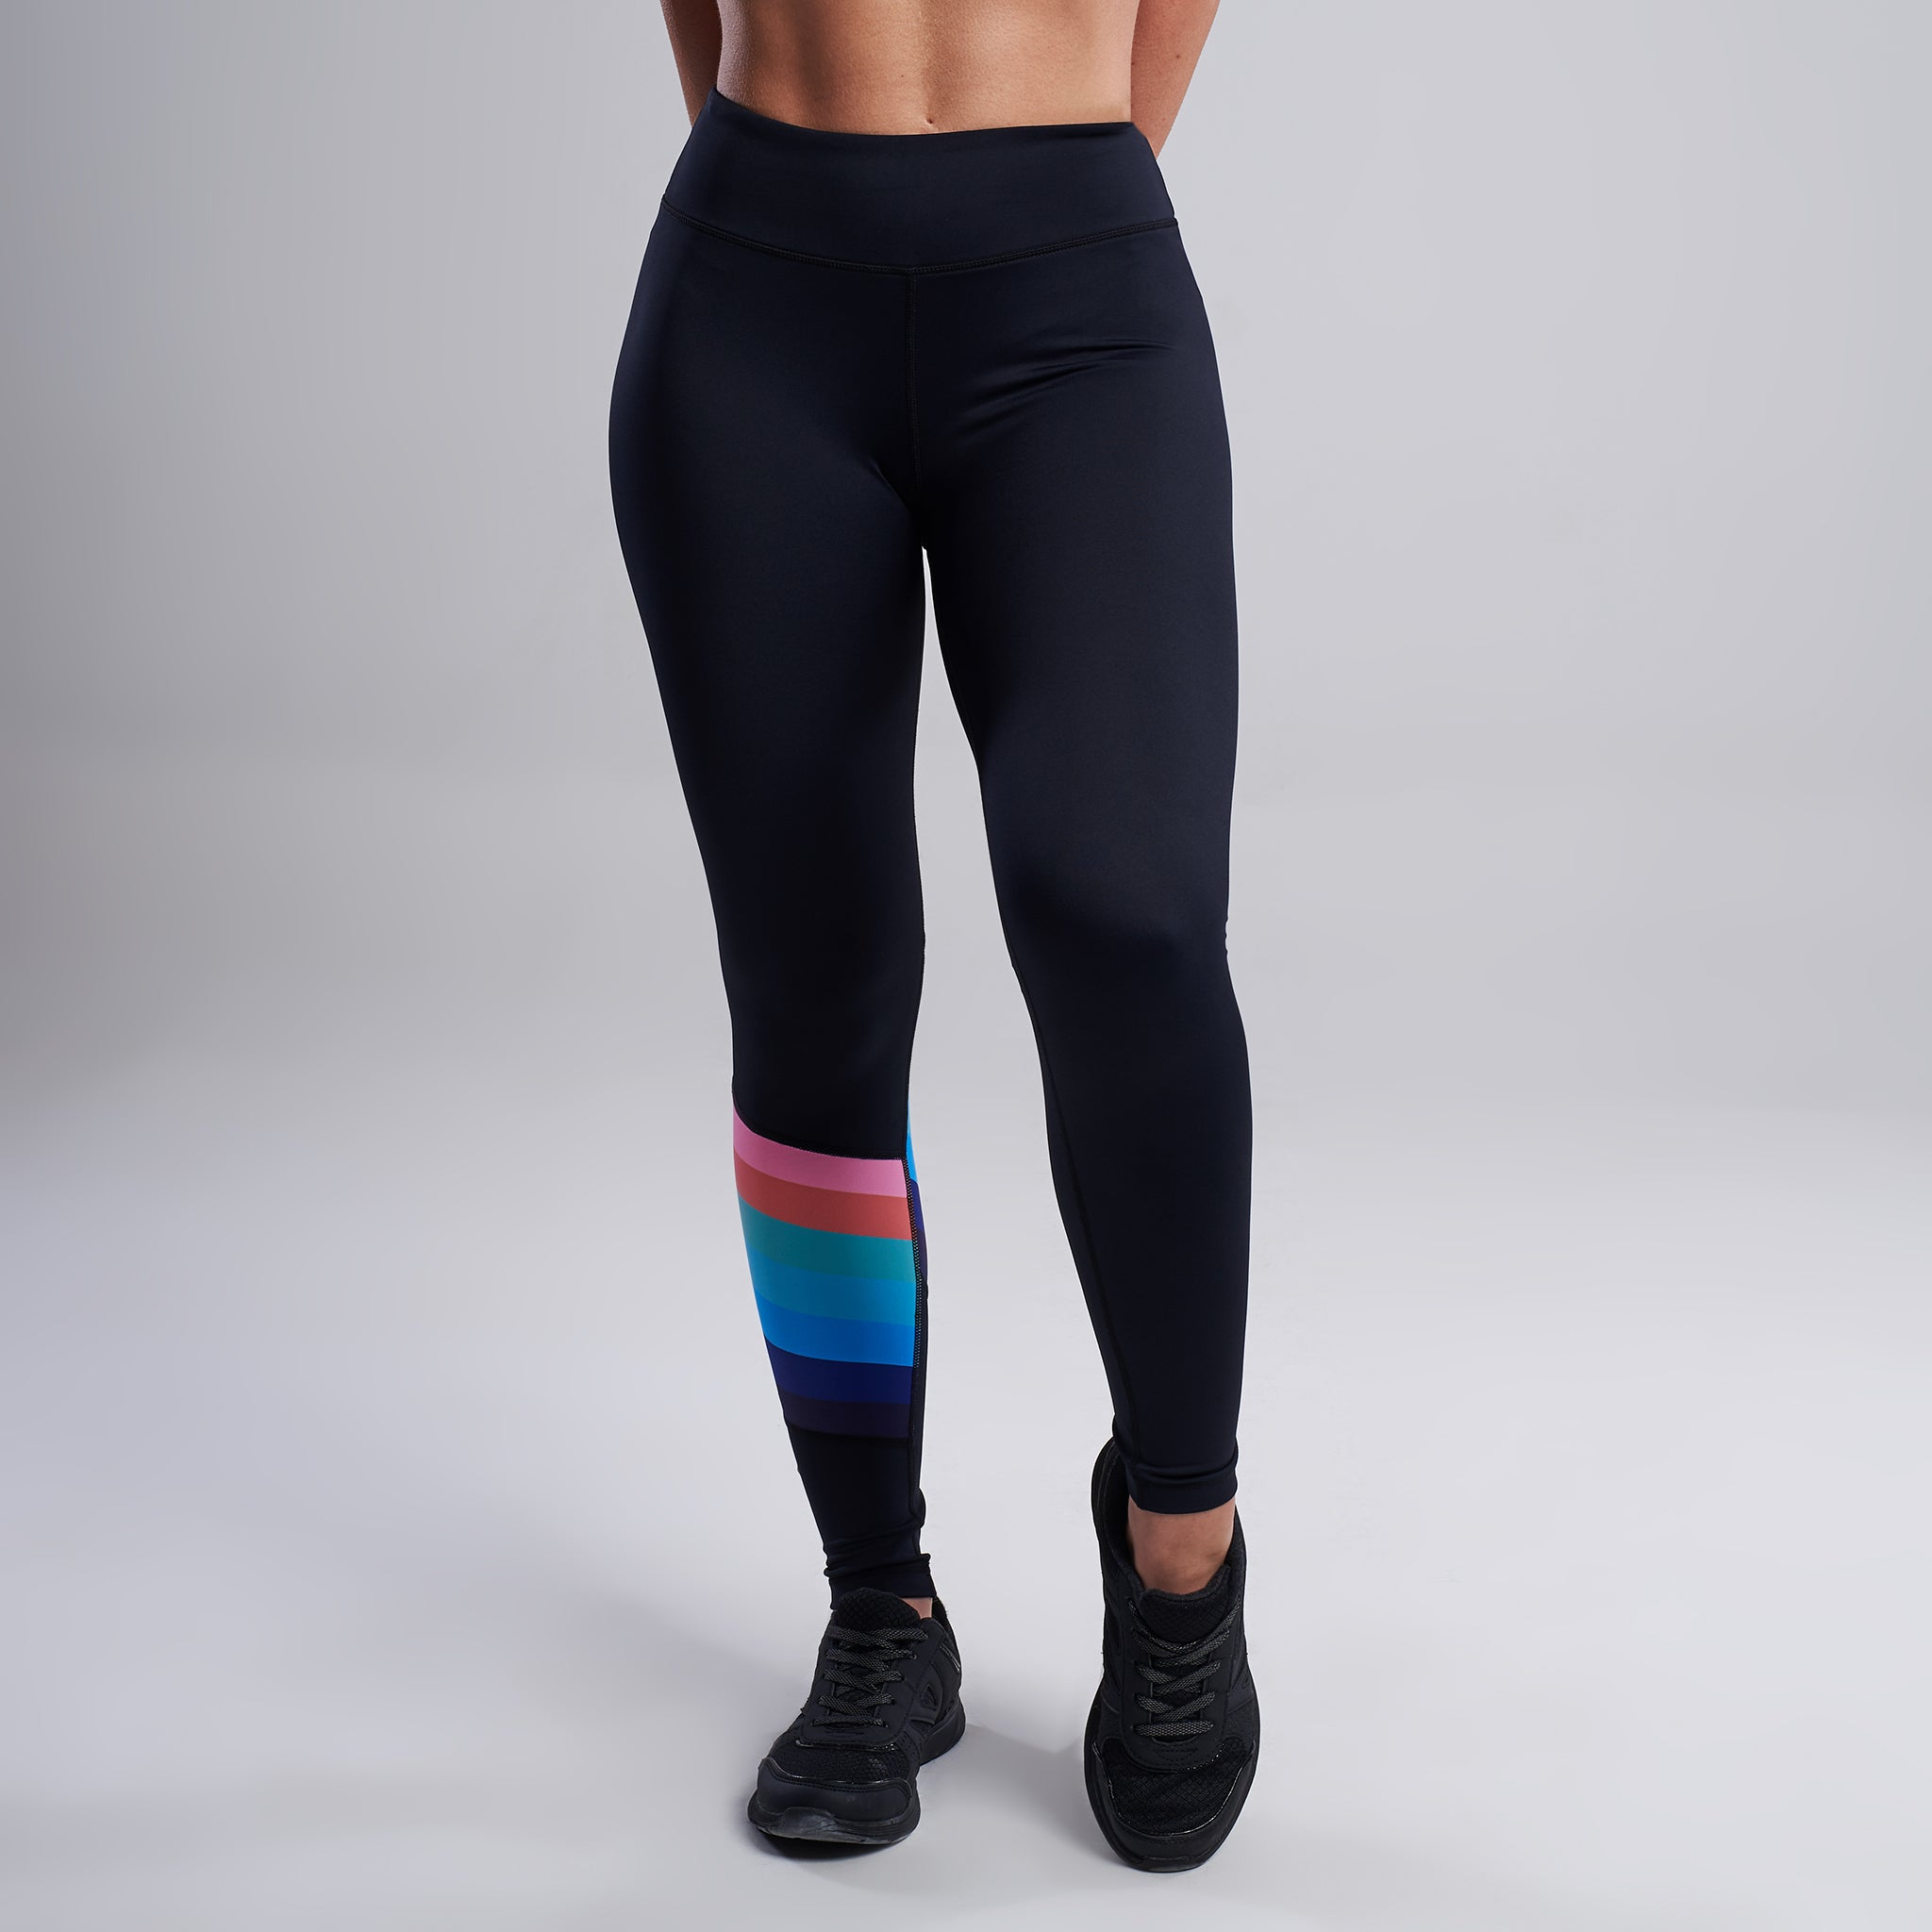 Rainbow Leggings in Black